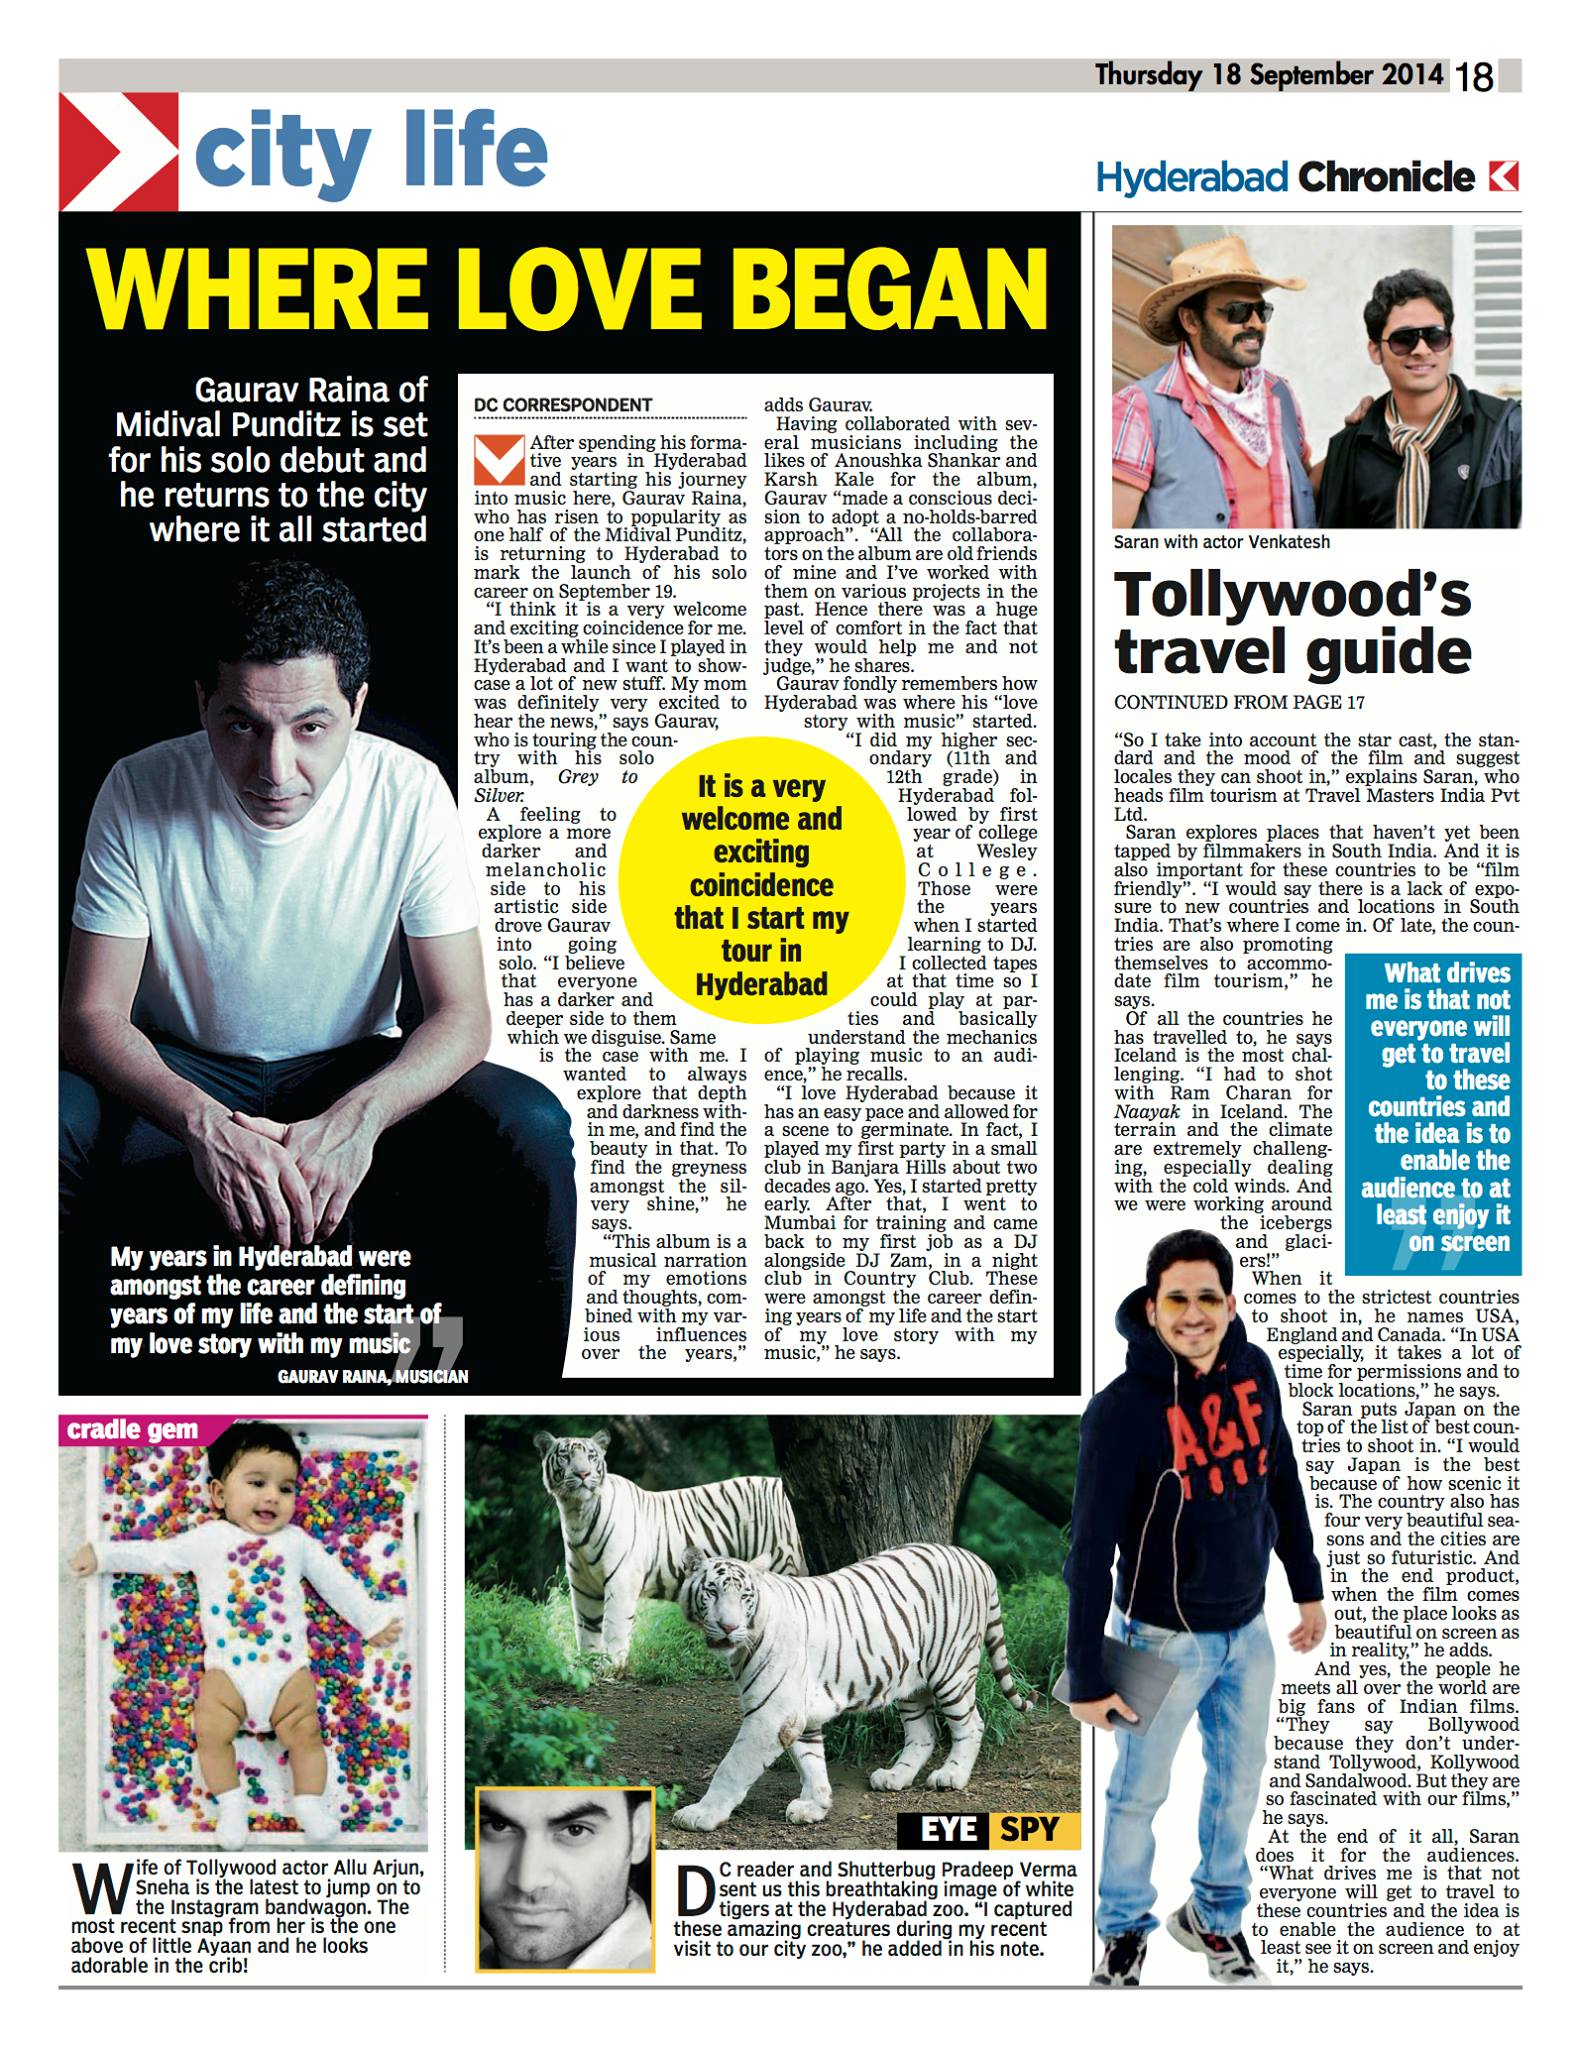 Deccan Chronicle (Sept 18th 2014).jpg